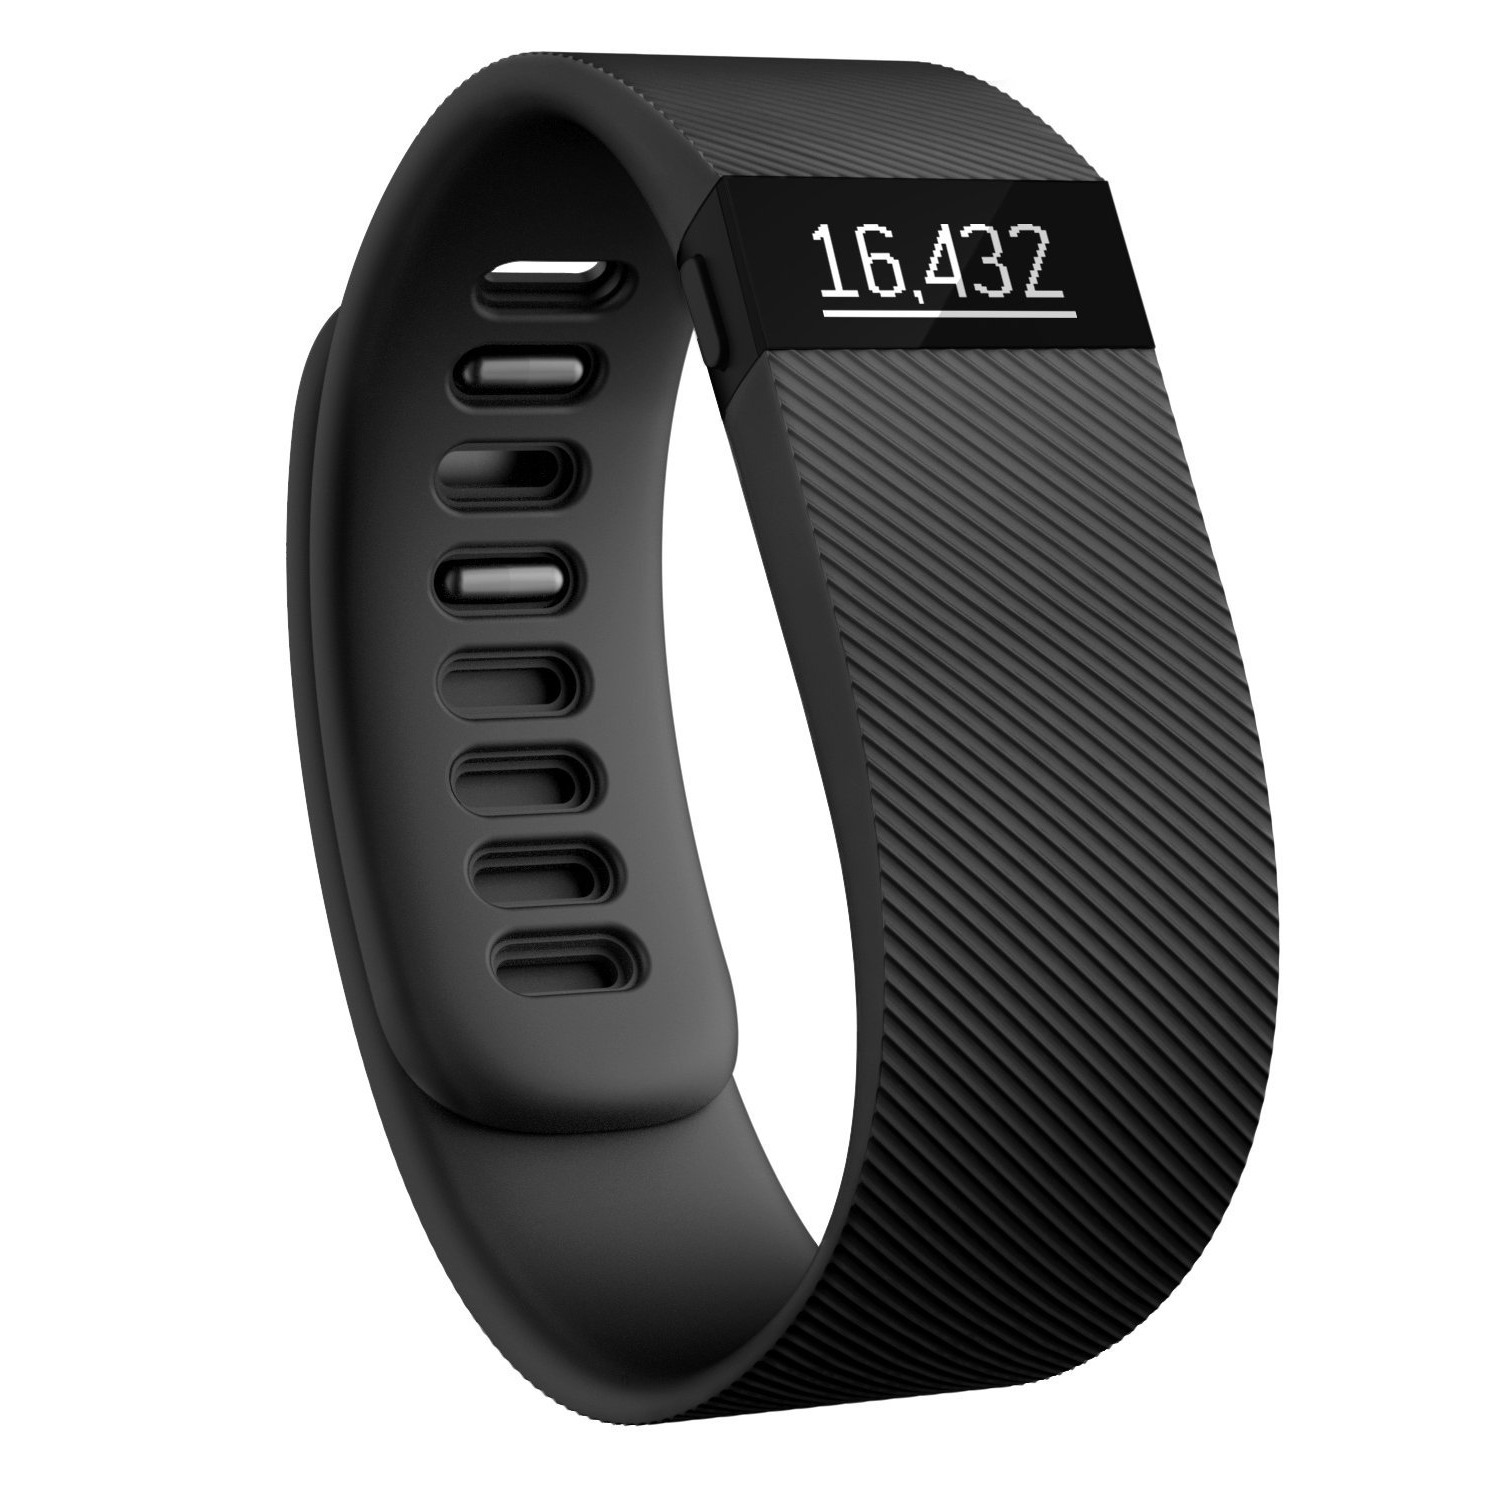 Refurbished Fitbit Charge Wireless Activity & Sleep Tracker Wristband Watch - Black Large